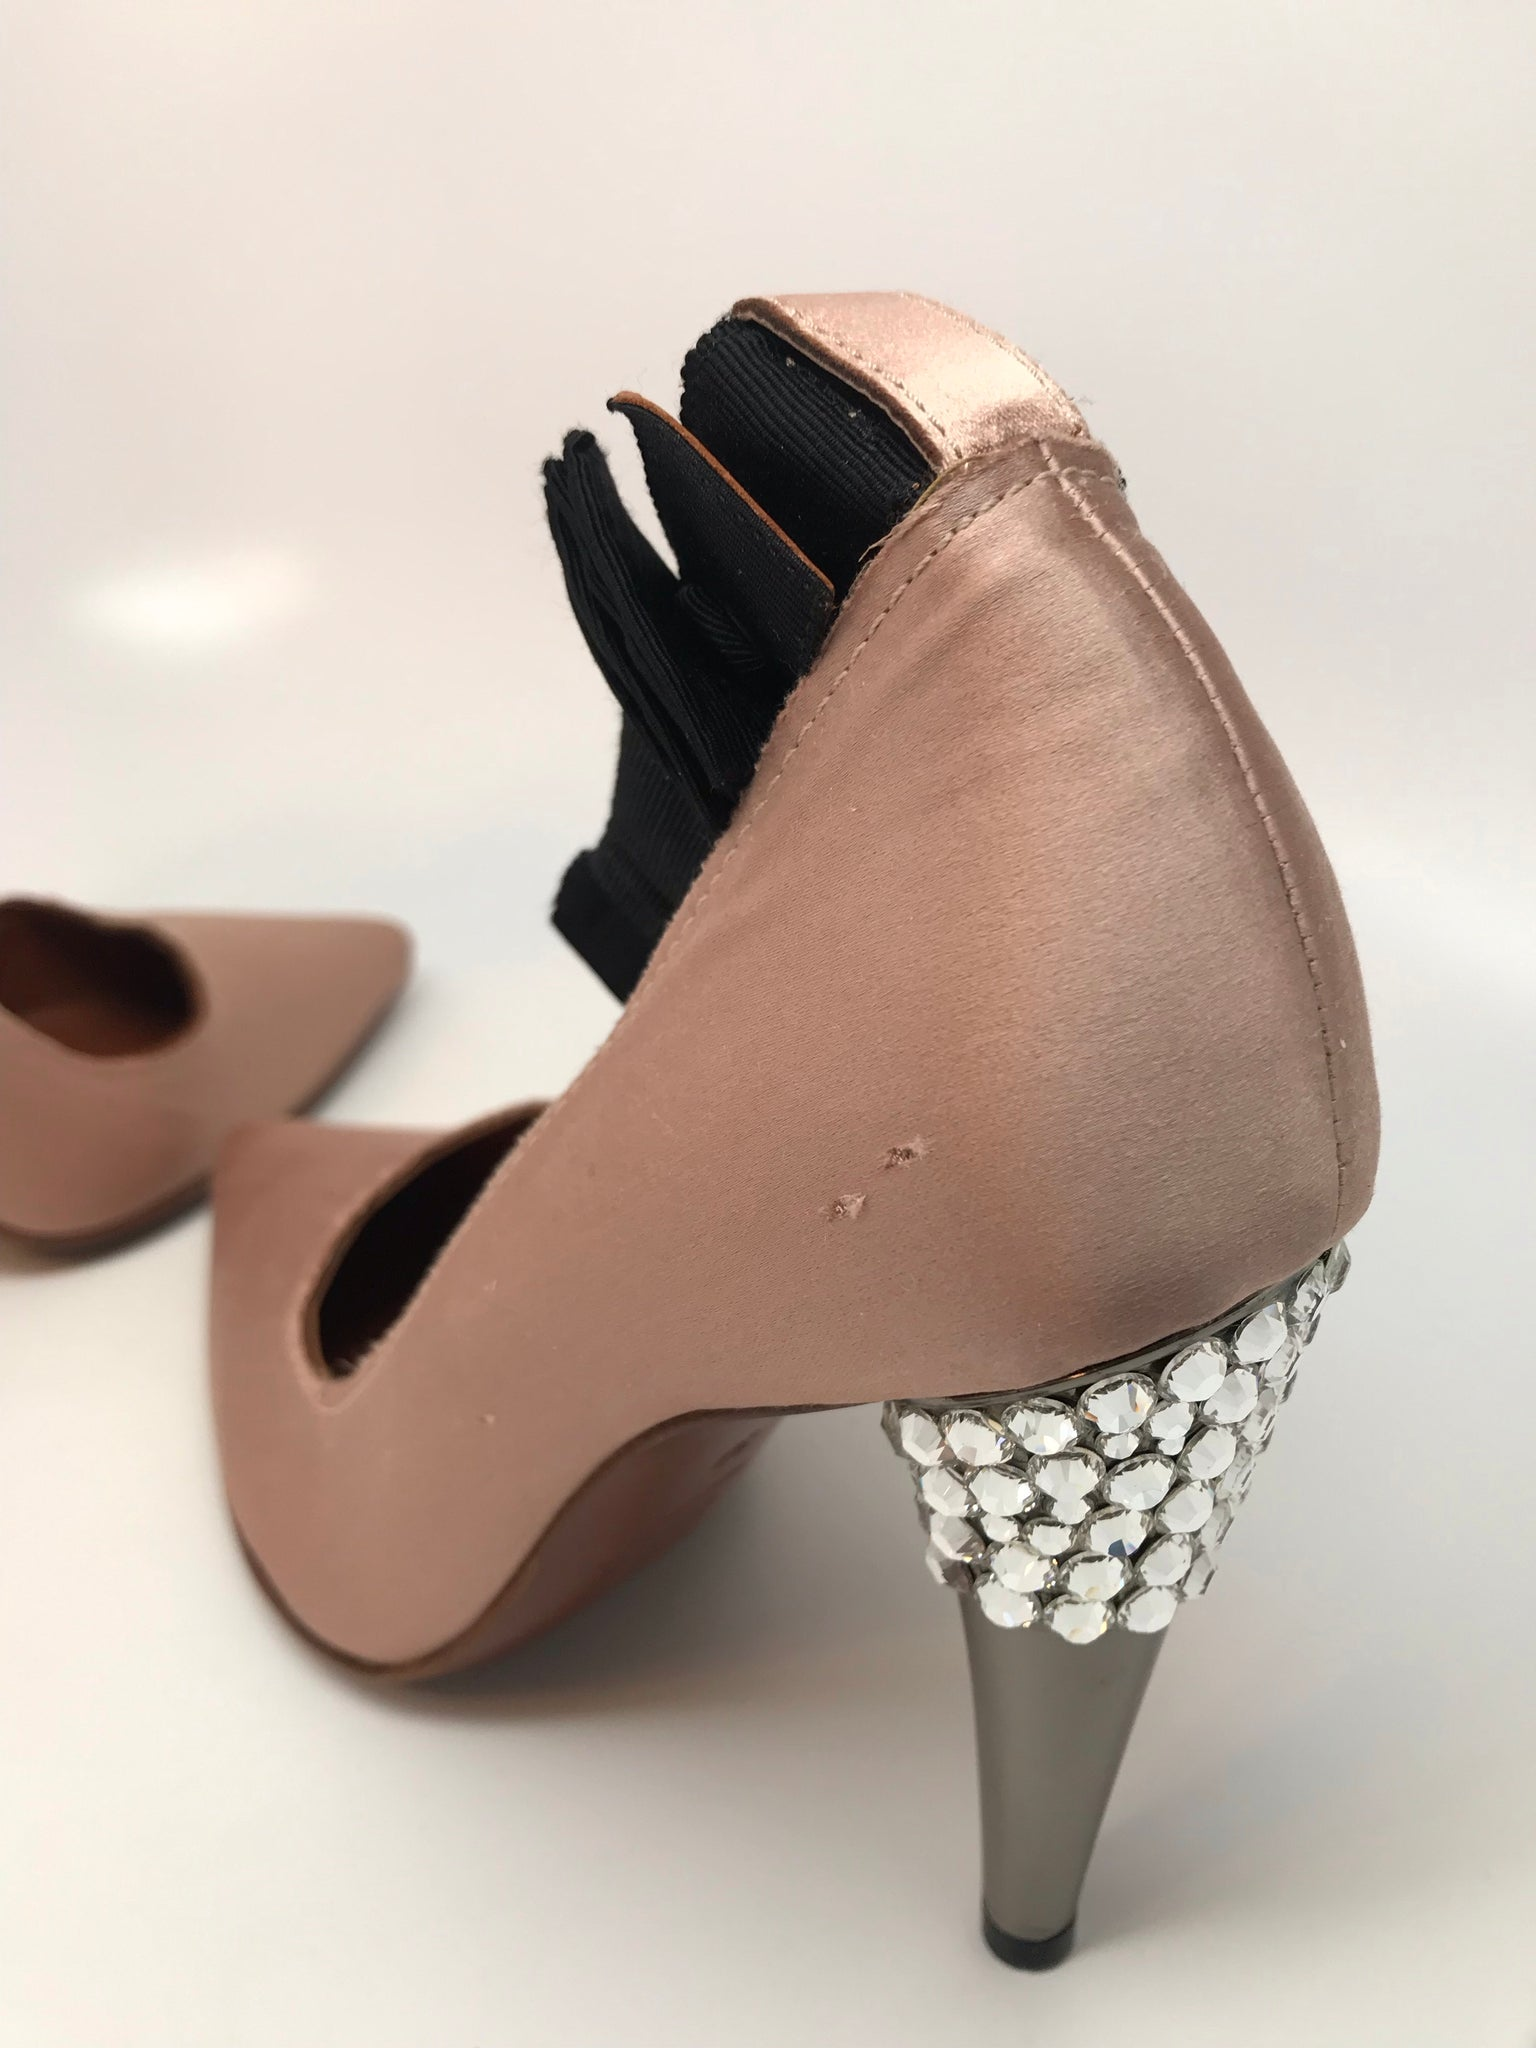 LANVIN NUDE SATIN CRYSTAL JEWELED PUMP - SIZE 36